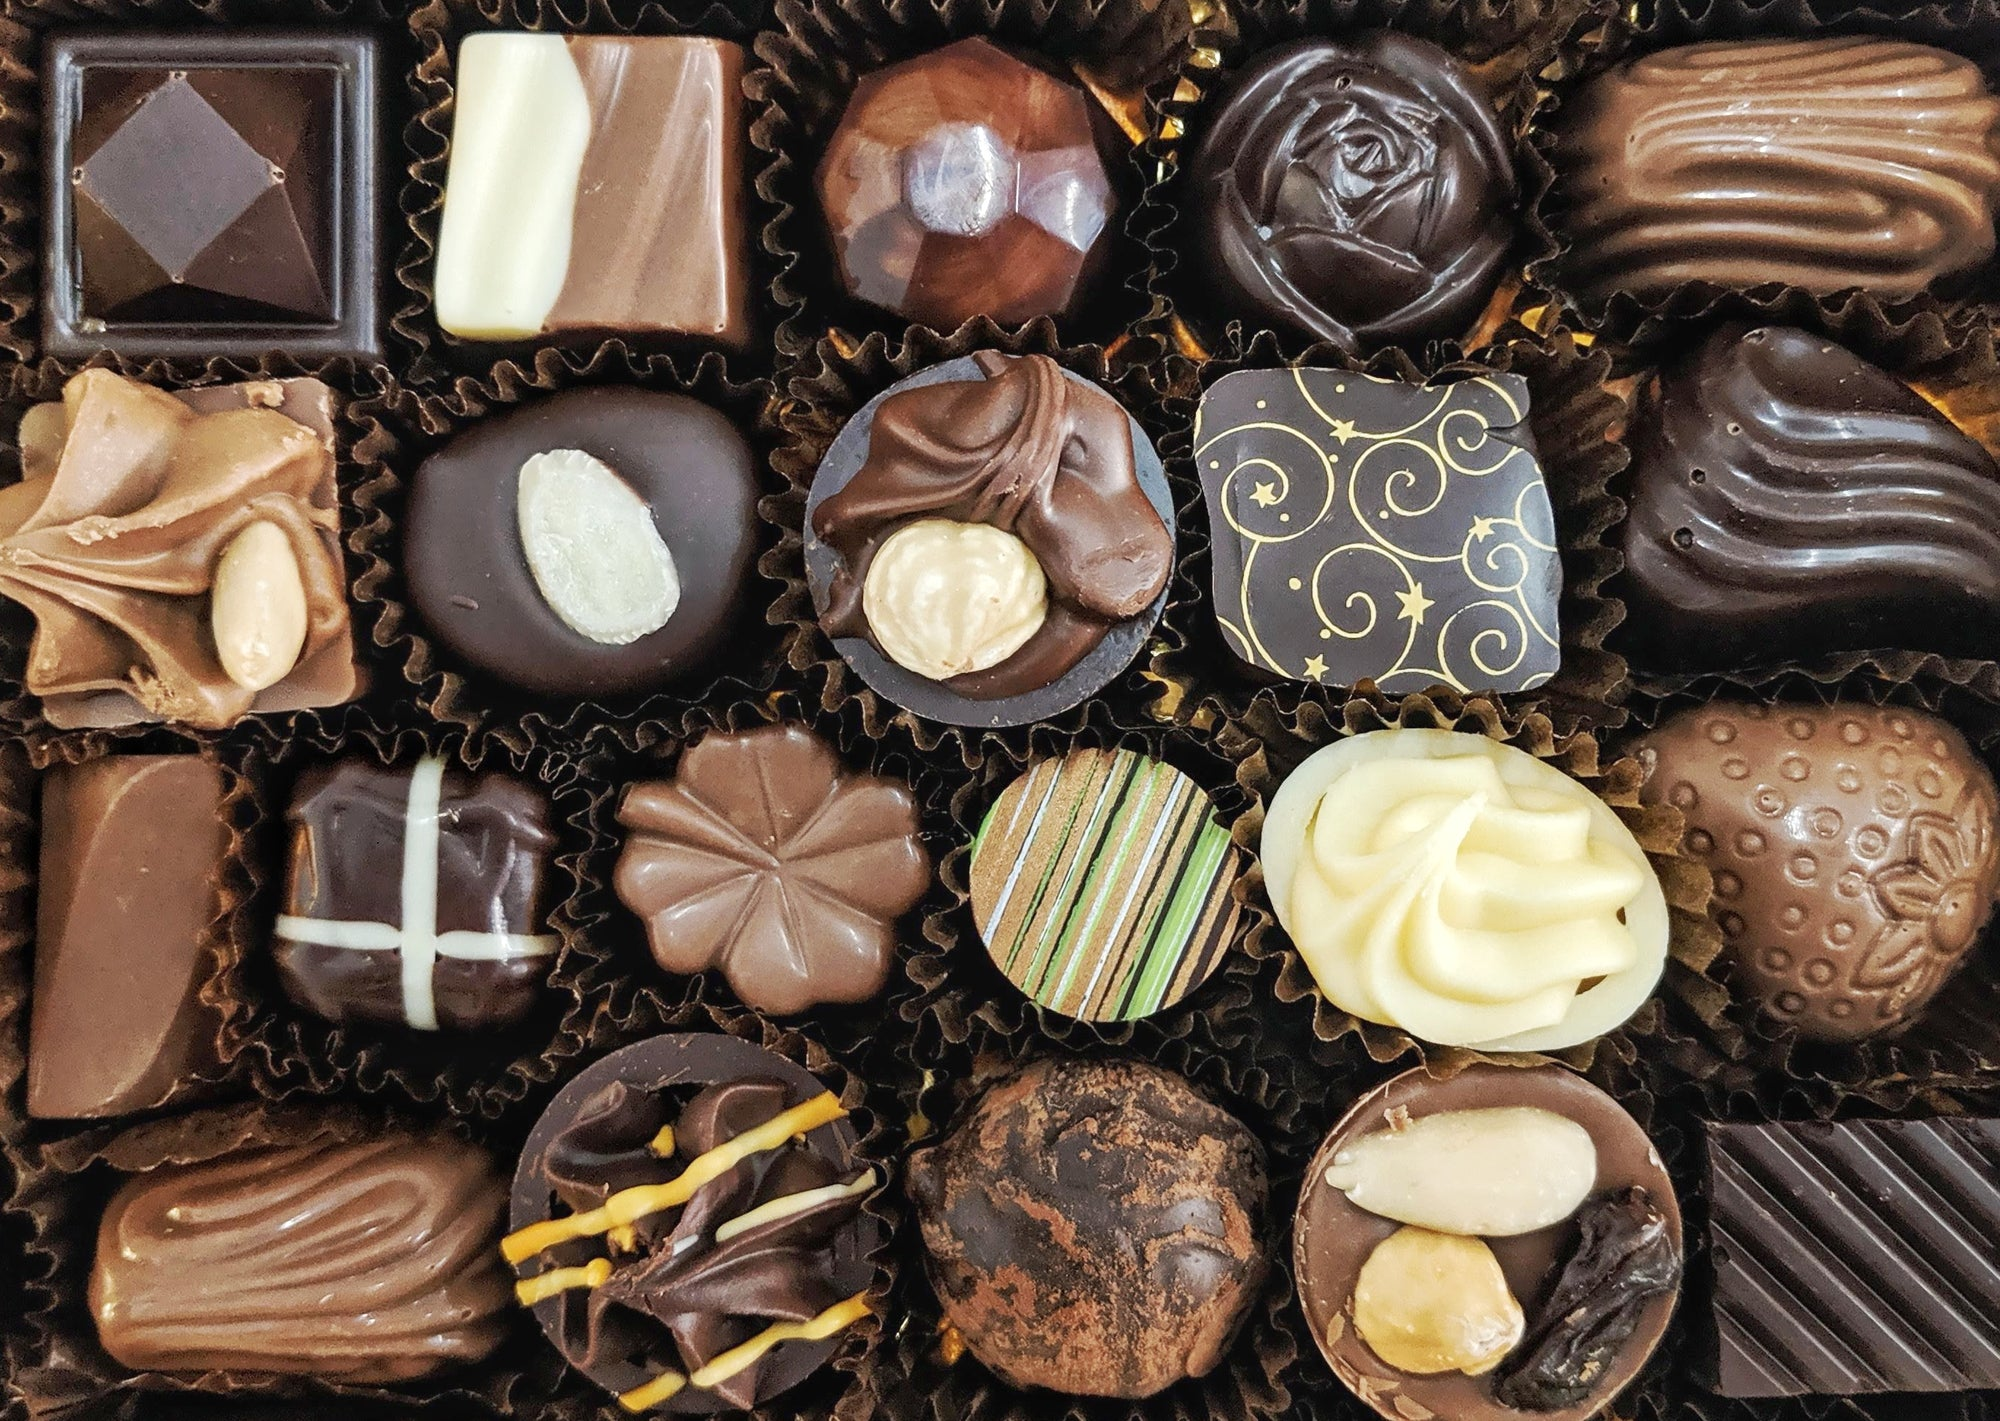 Medium Box of 18 Chocolates - quick selection